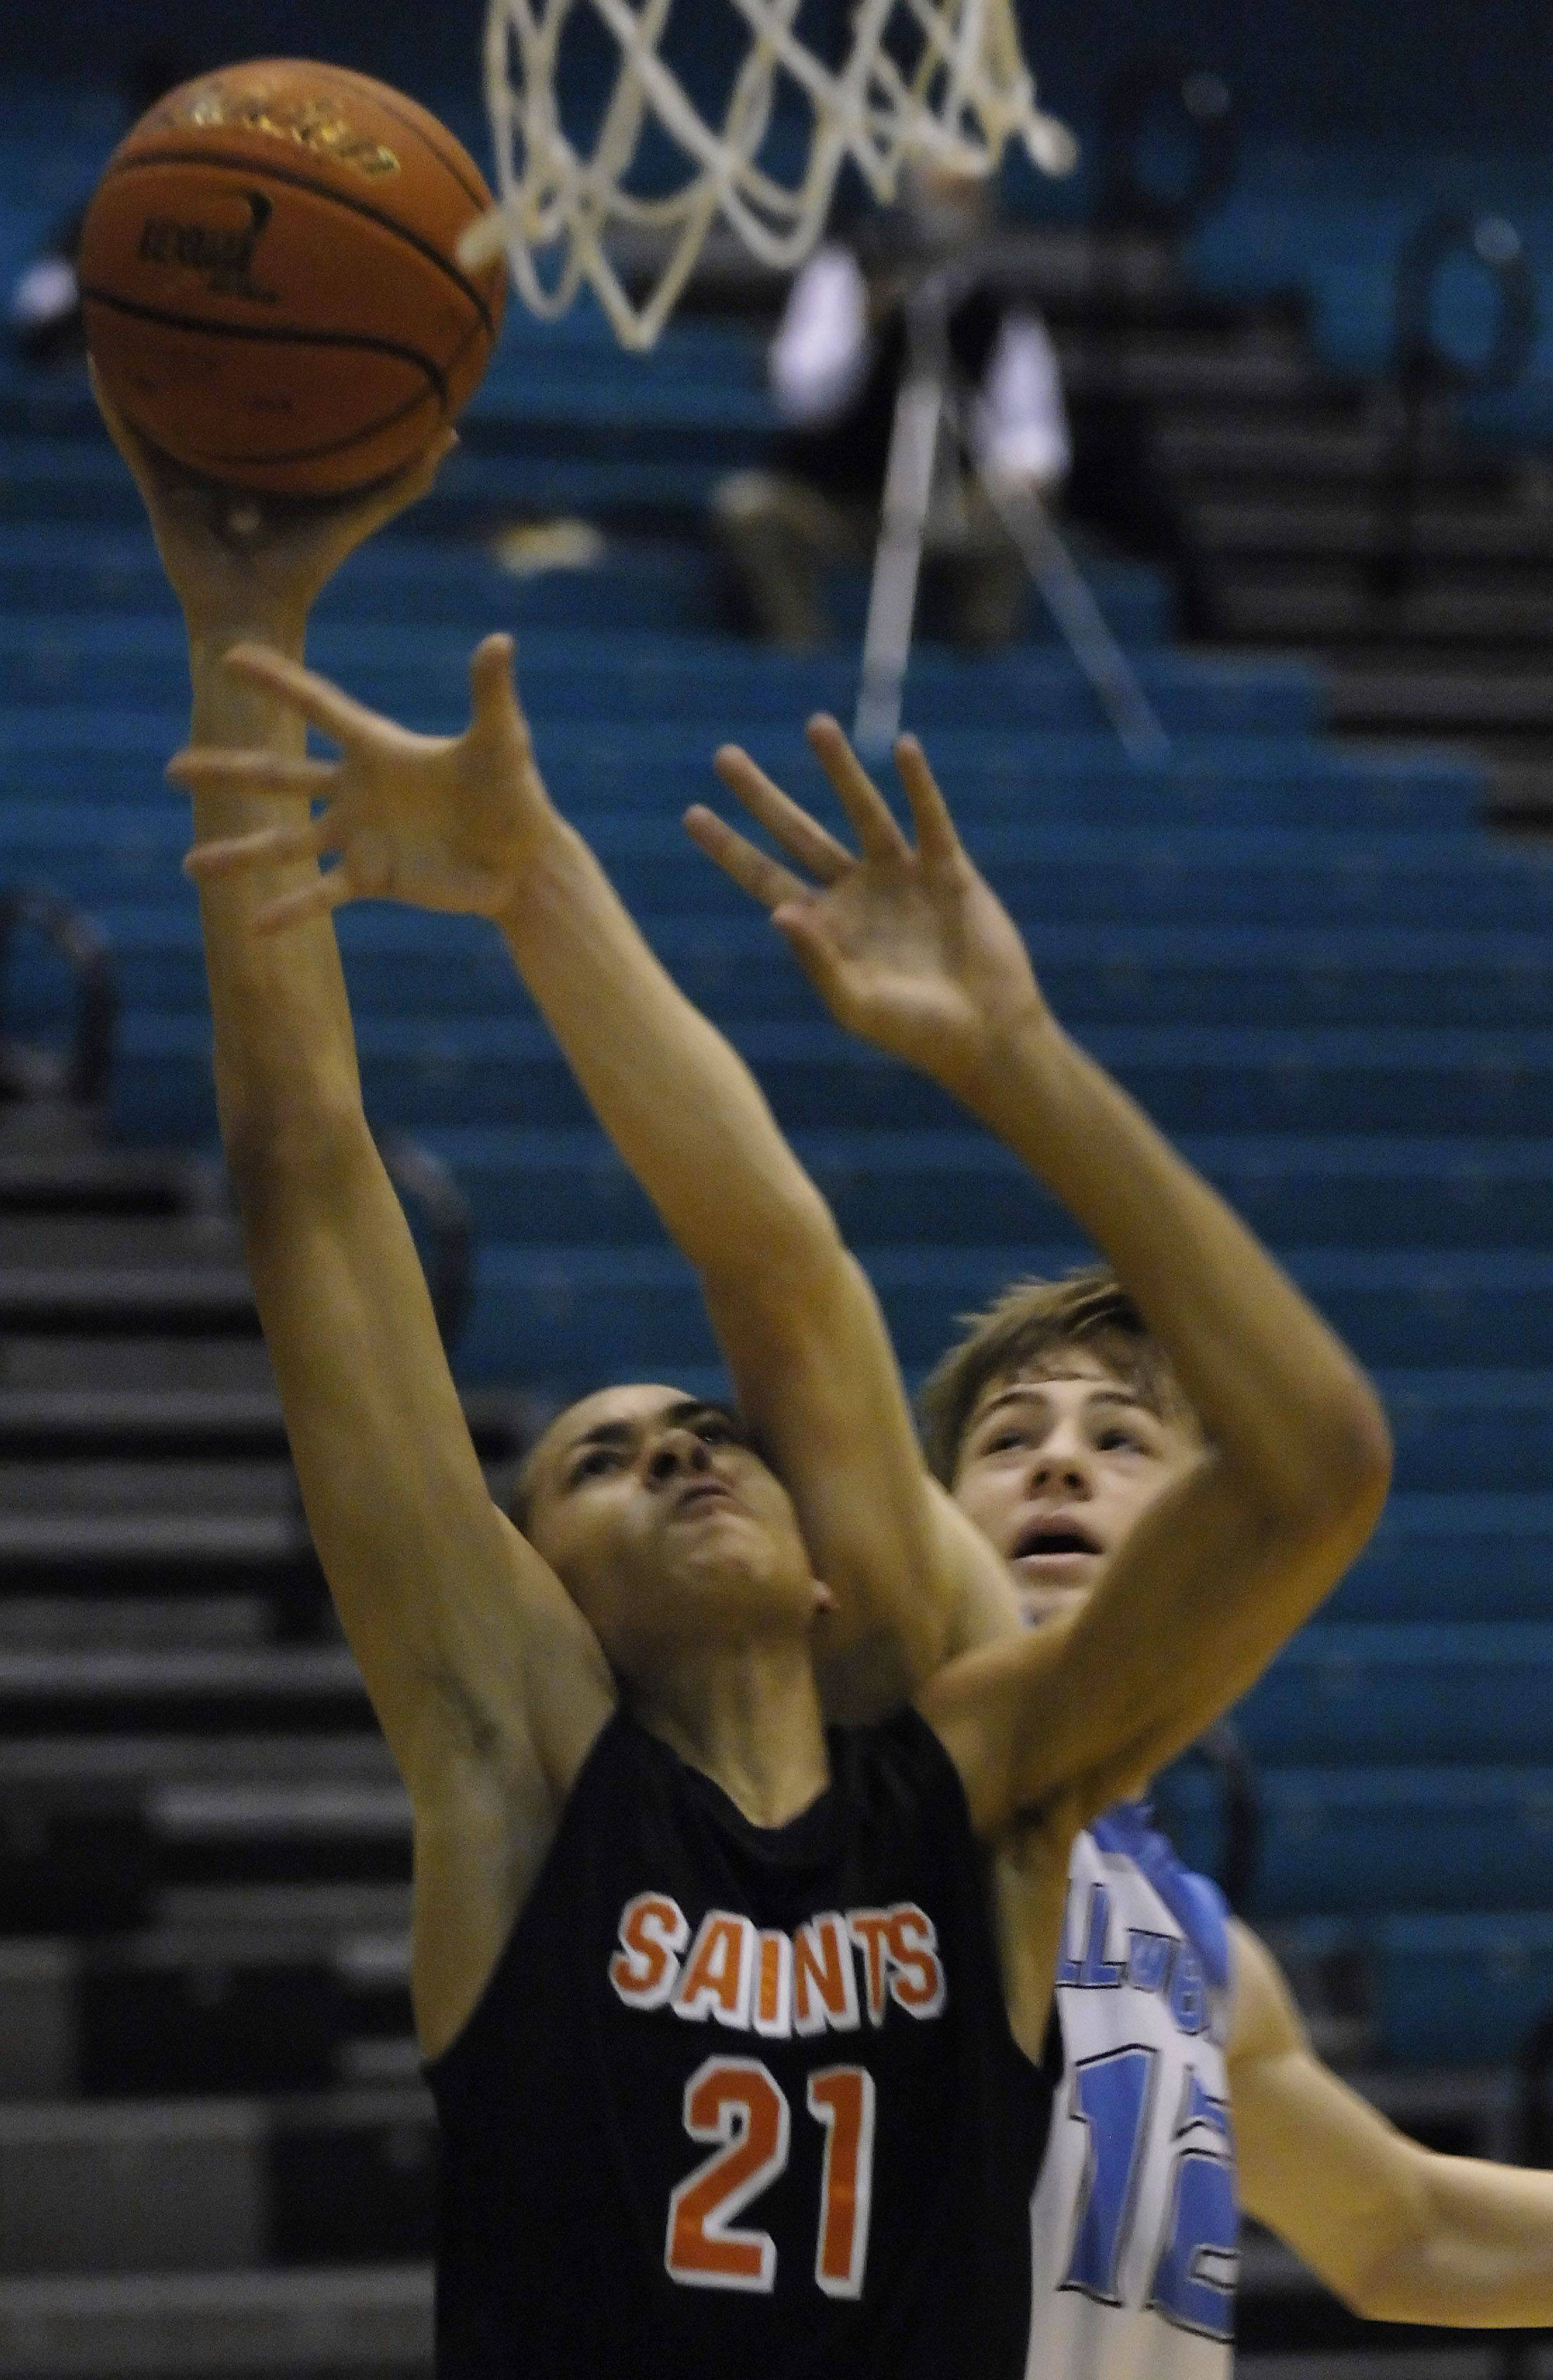 Images: St. Charles East vs. Willowbrook boys basketball